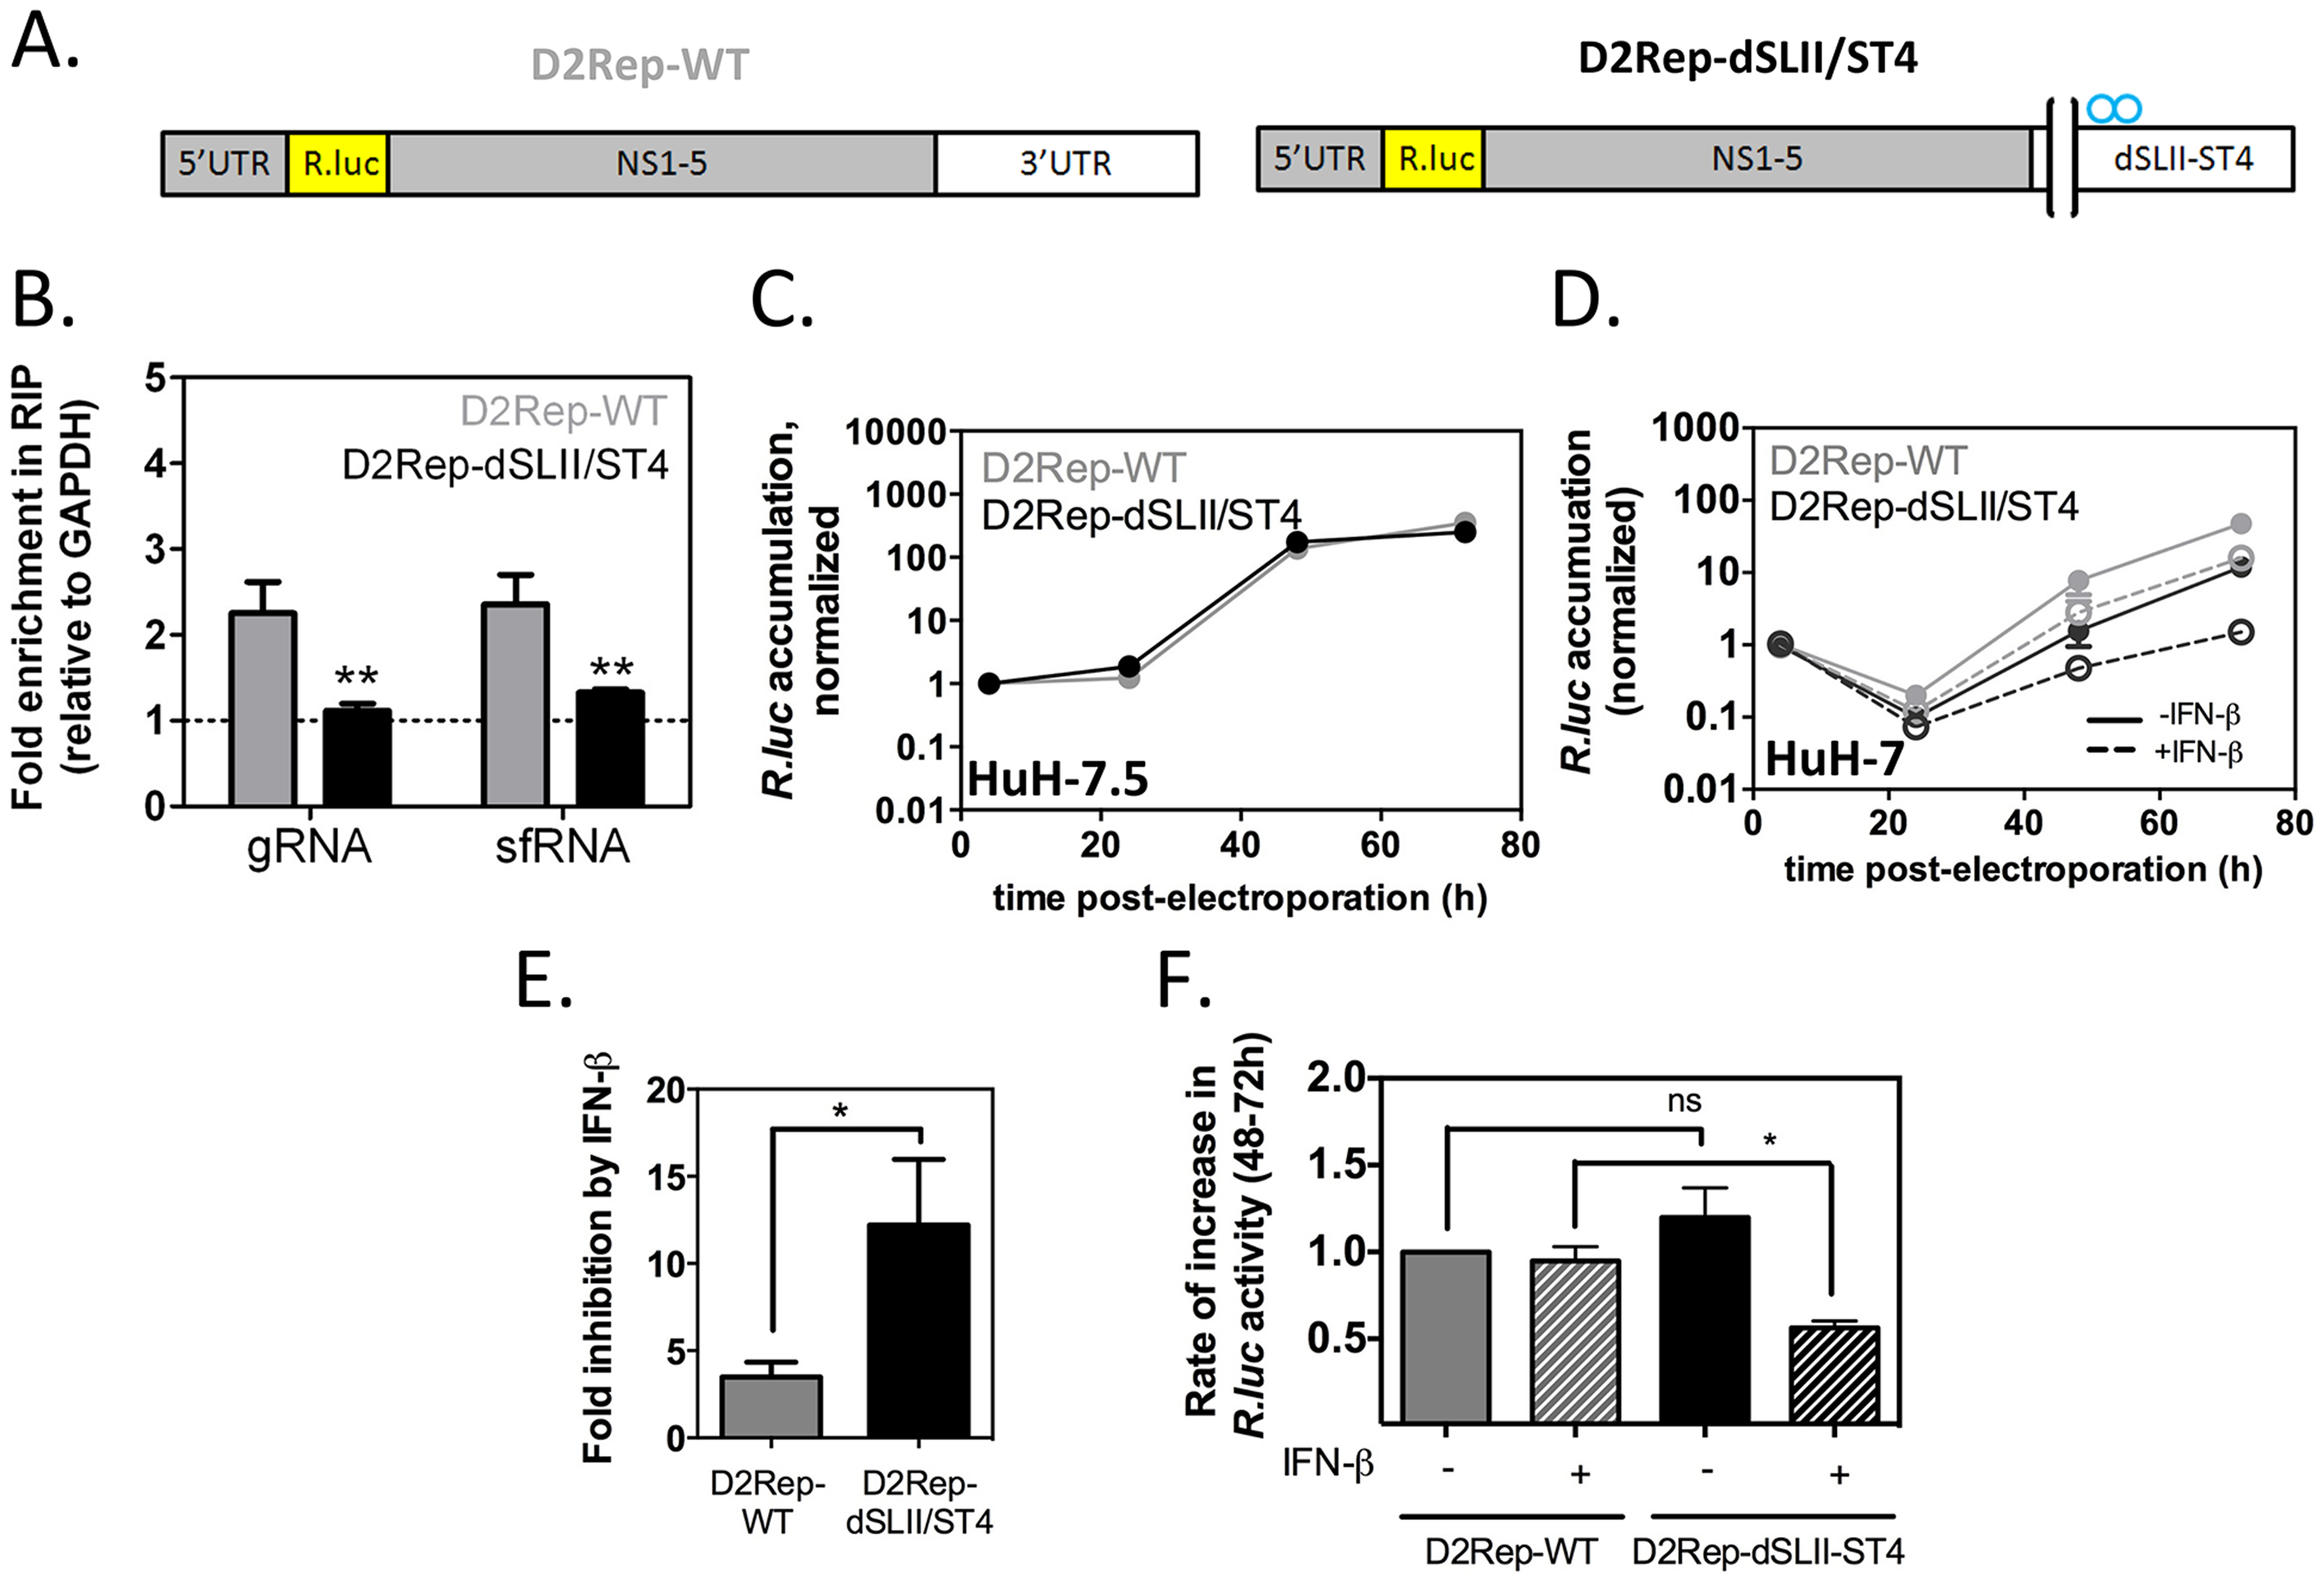 Binding to G3BP1, G3BP2 and CAPRIN1 protects DENV-2 replicons from the antiviral effects of IFN-β.